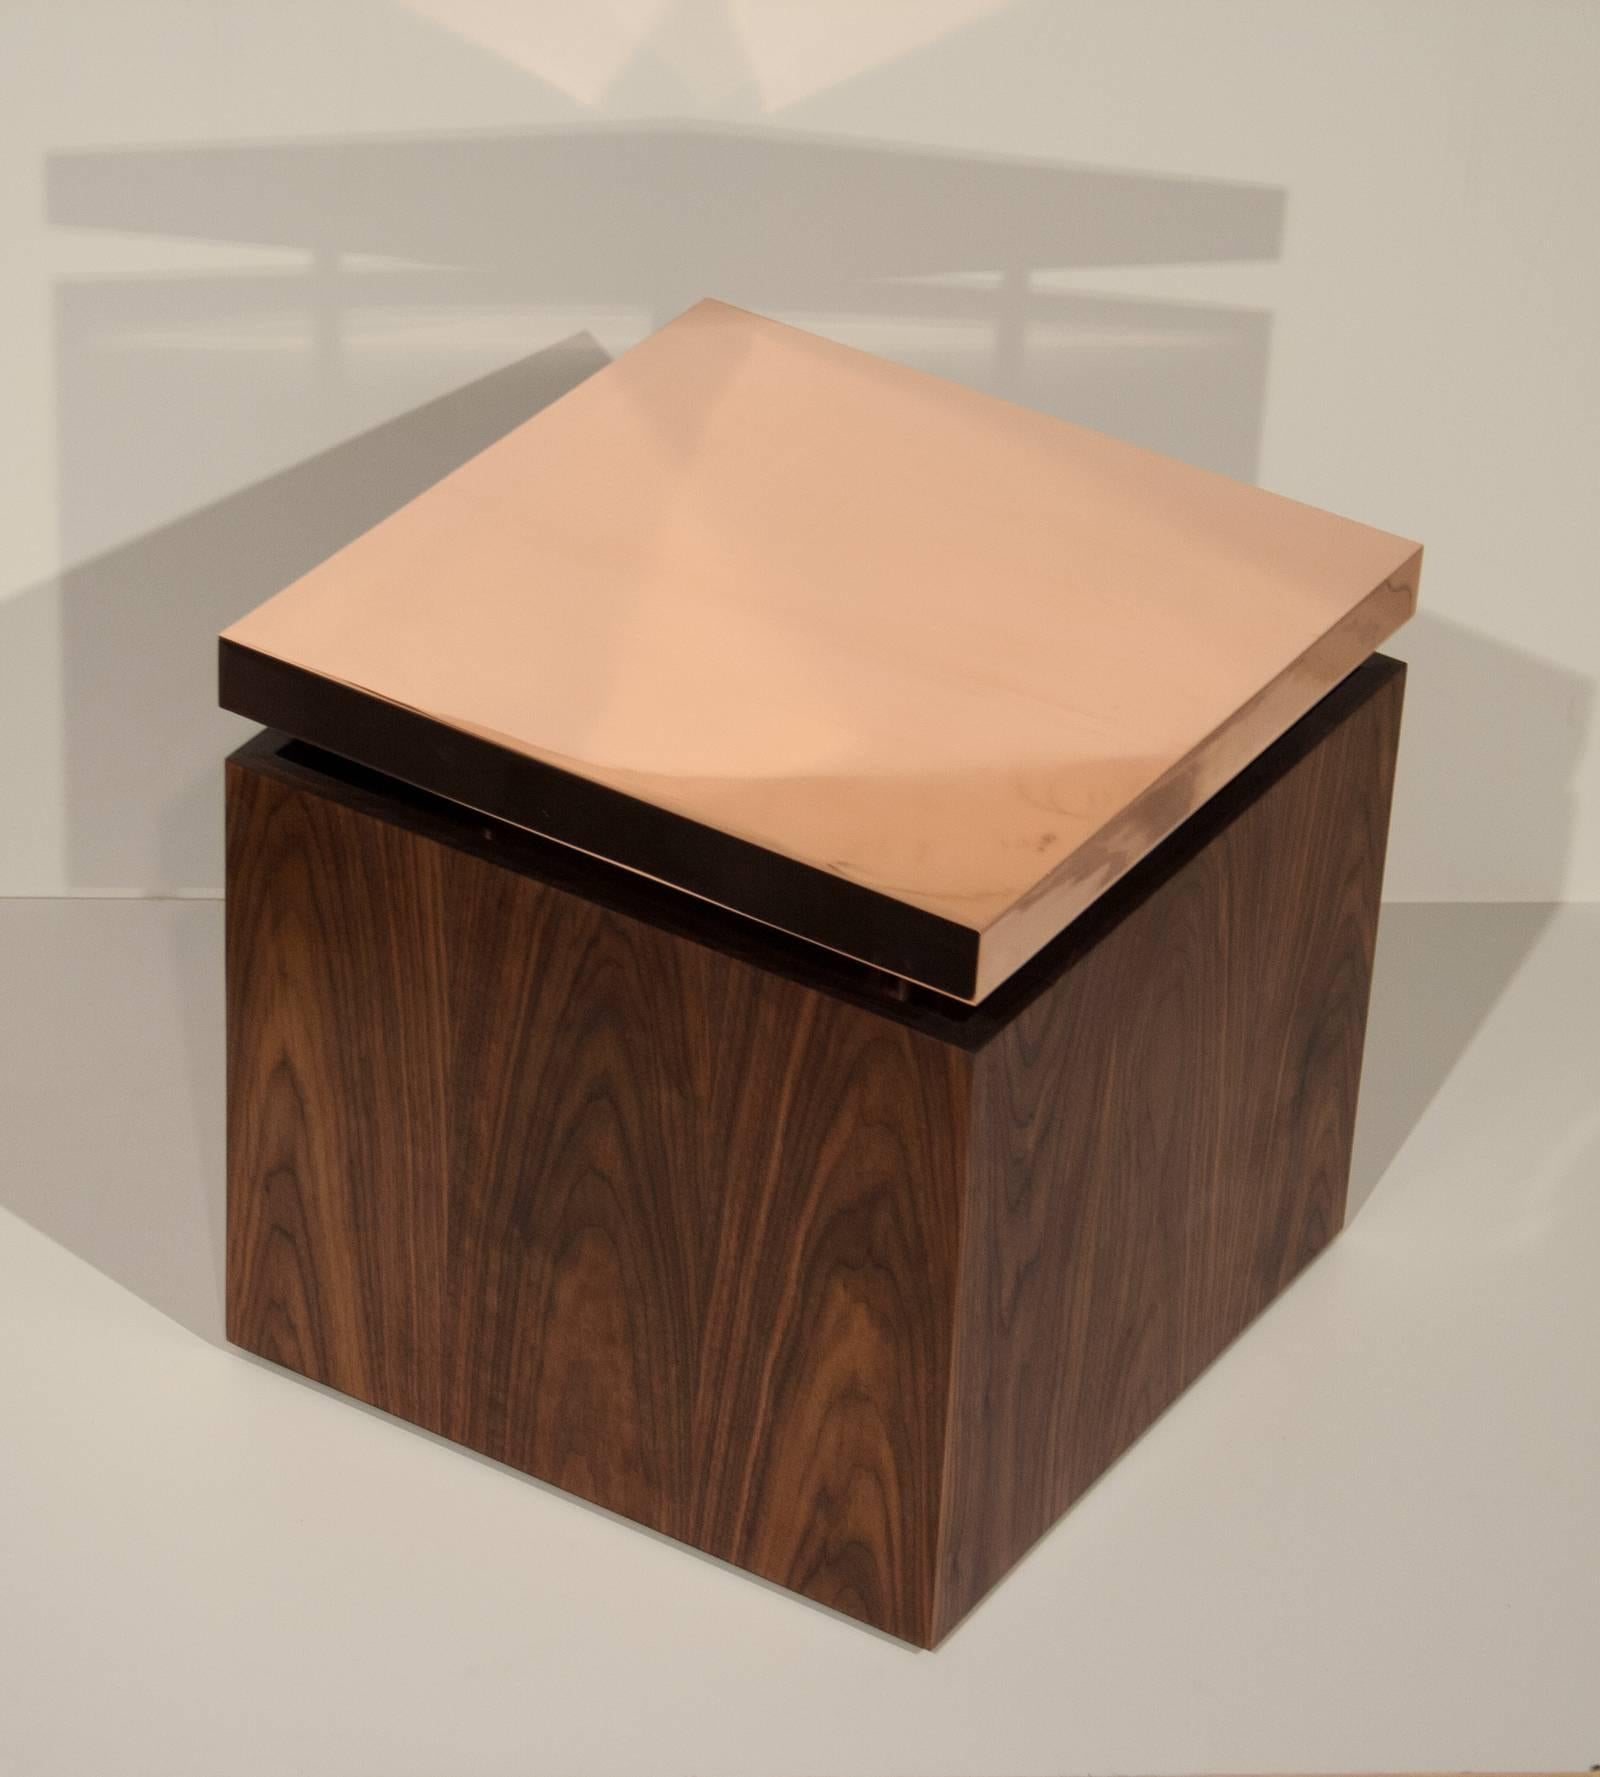 American Pair Of Contemporary Cube End Tables In Copper And Walnut By Brant  Ritter For Sale